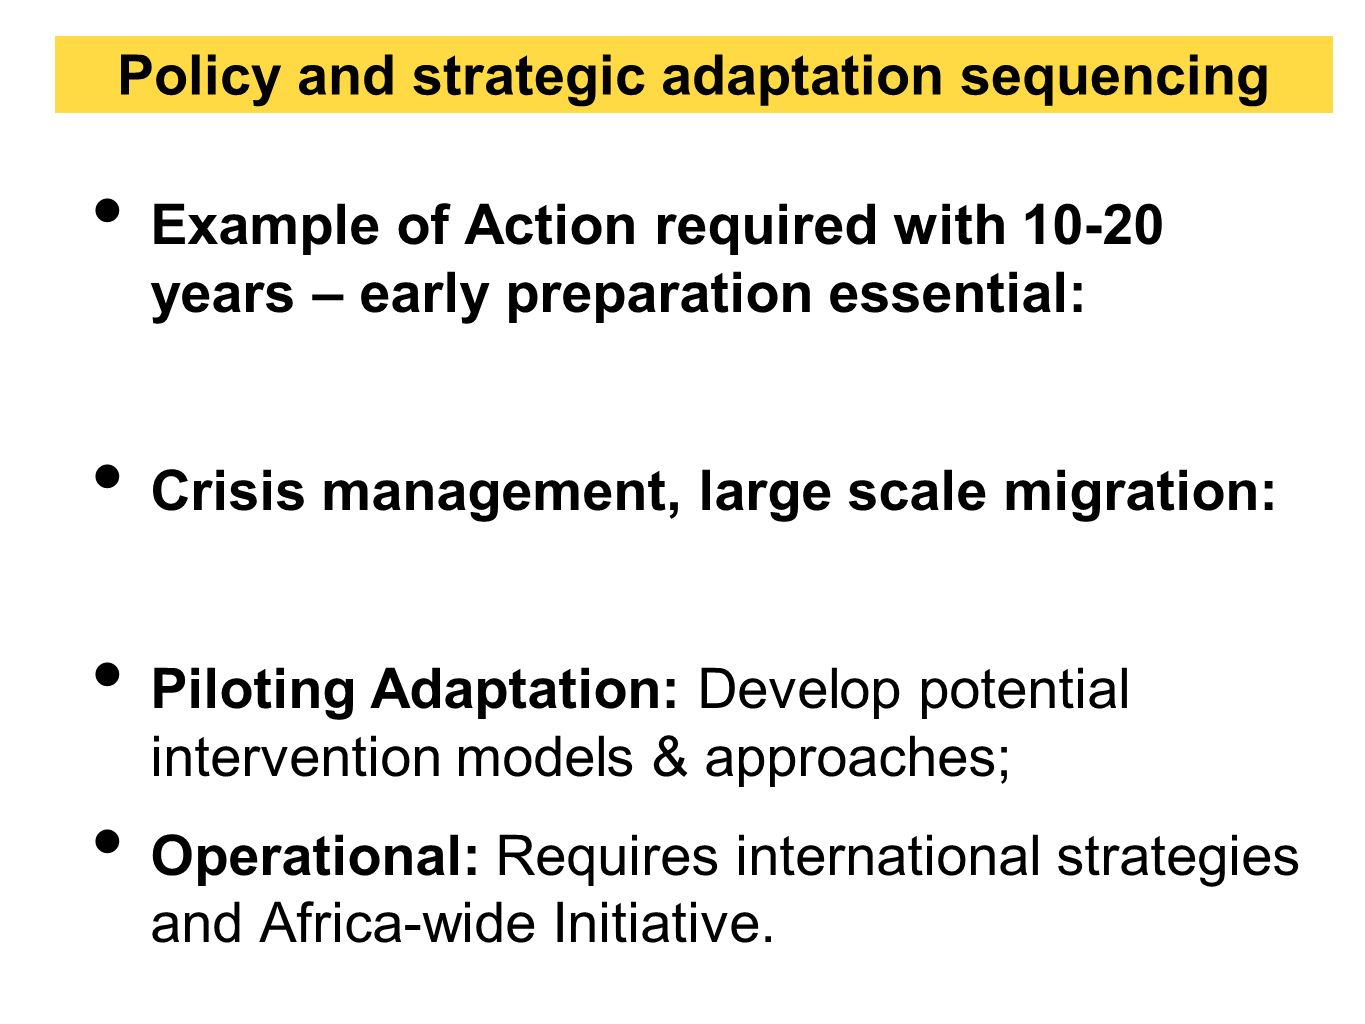 Example of Action required with years – early preparation essential: Crisis management, large scale migration: Piloting Adaptation: Develop potential intervention models & approaches; Operational: Requires international strategies and Africa-wide Initiative.